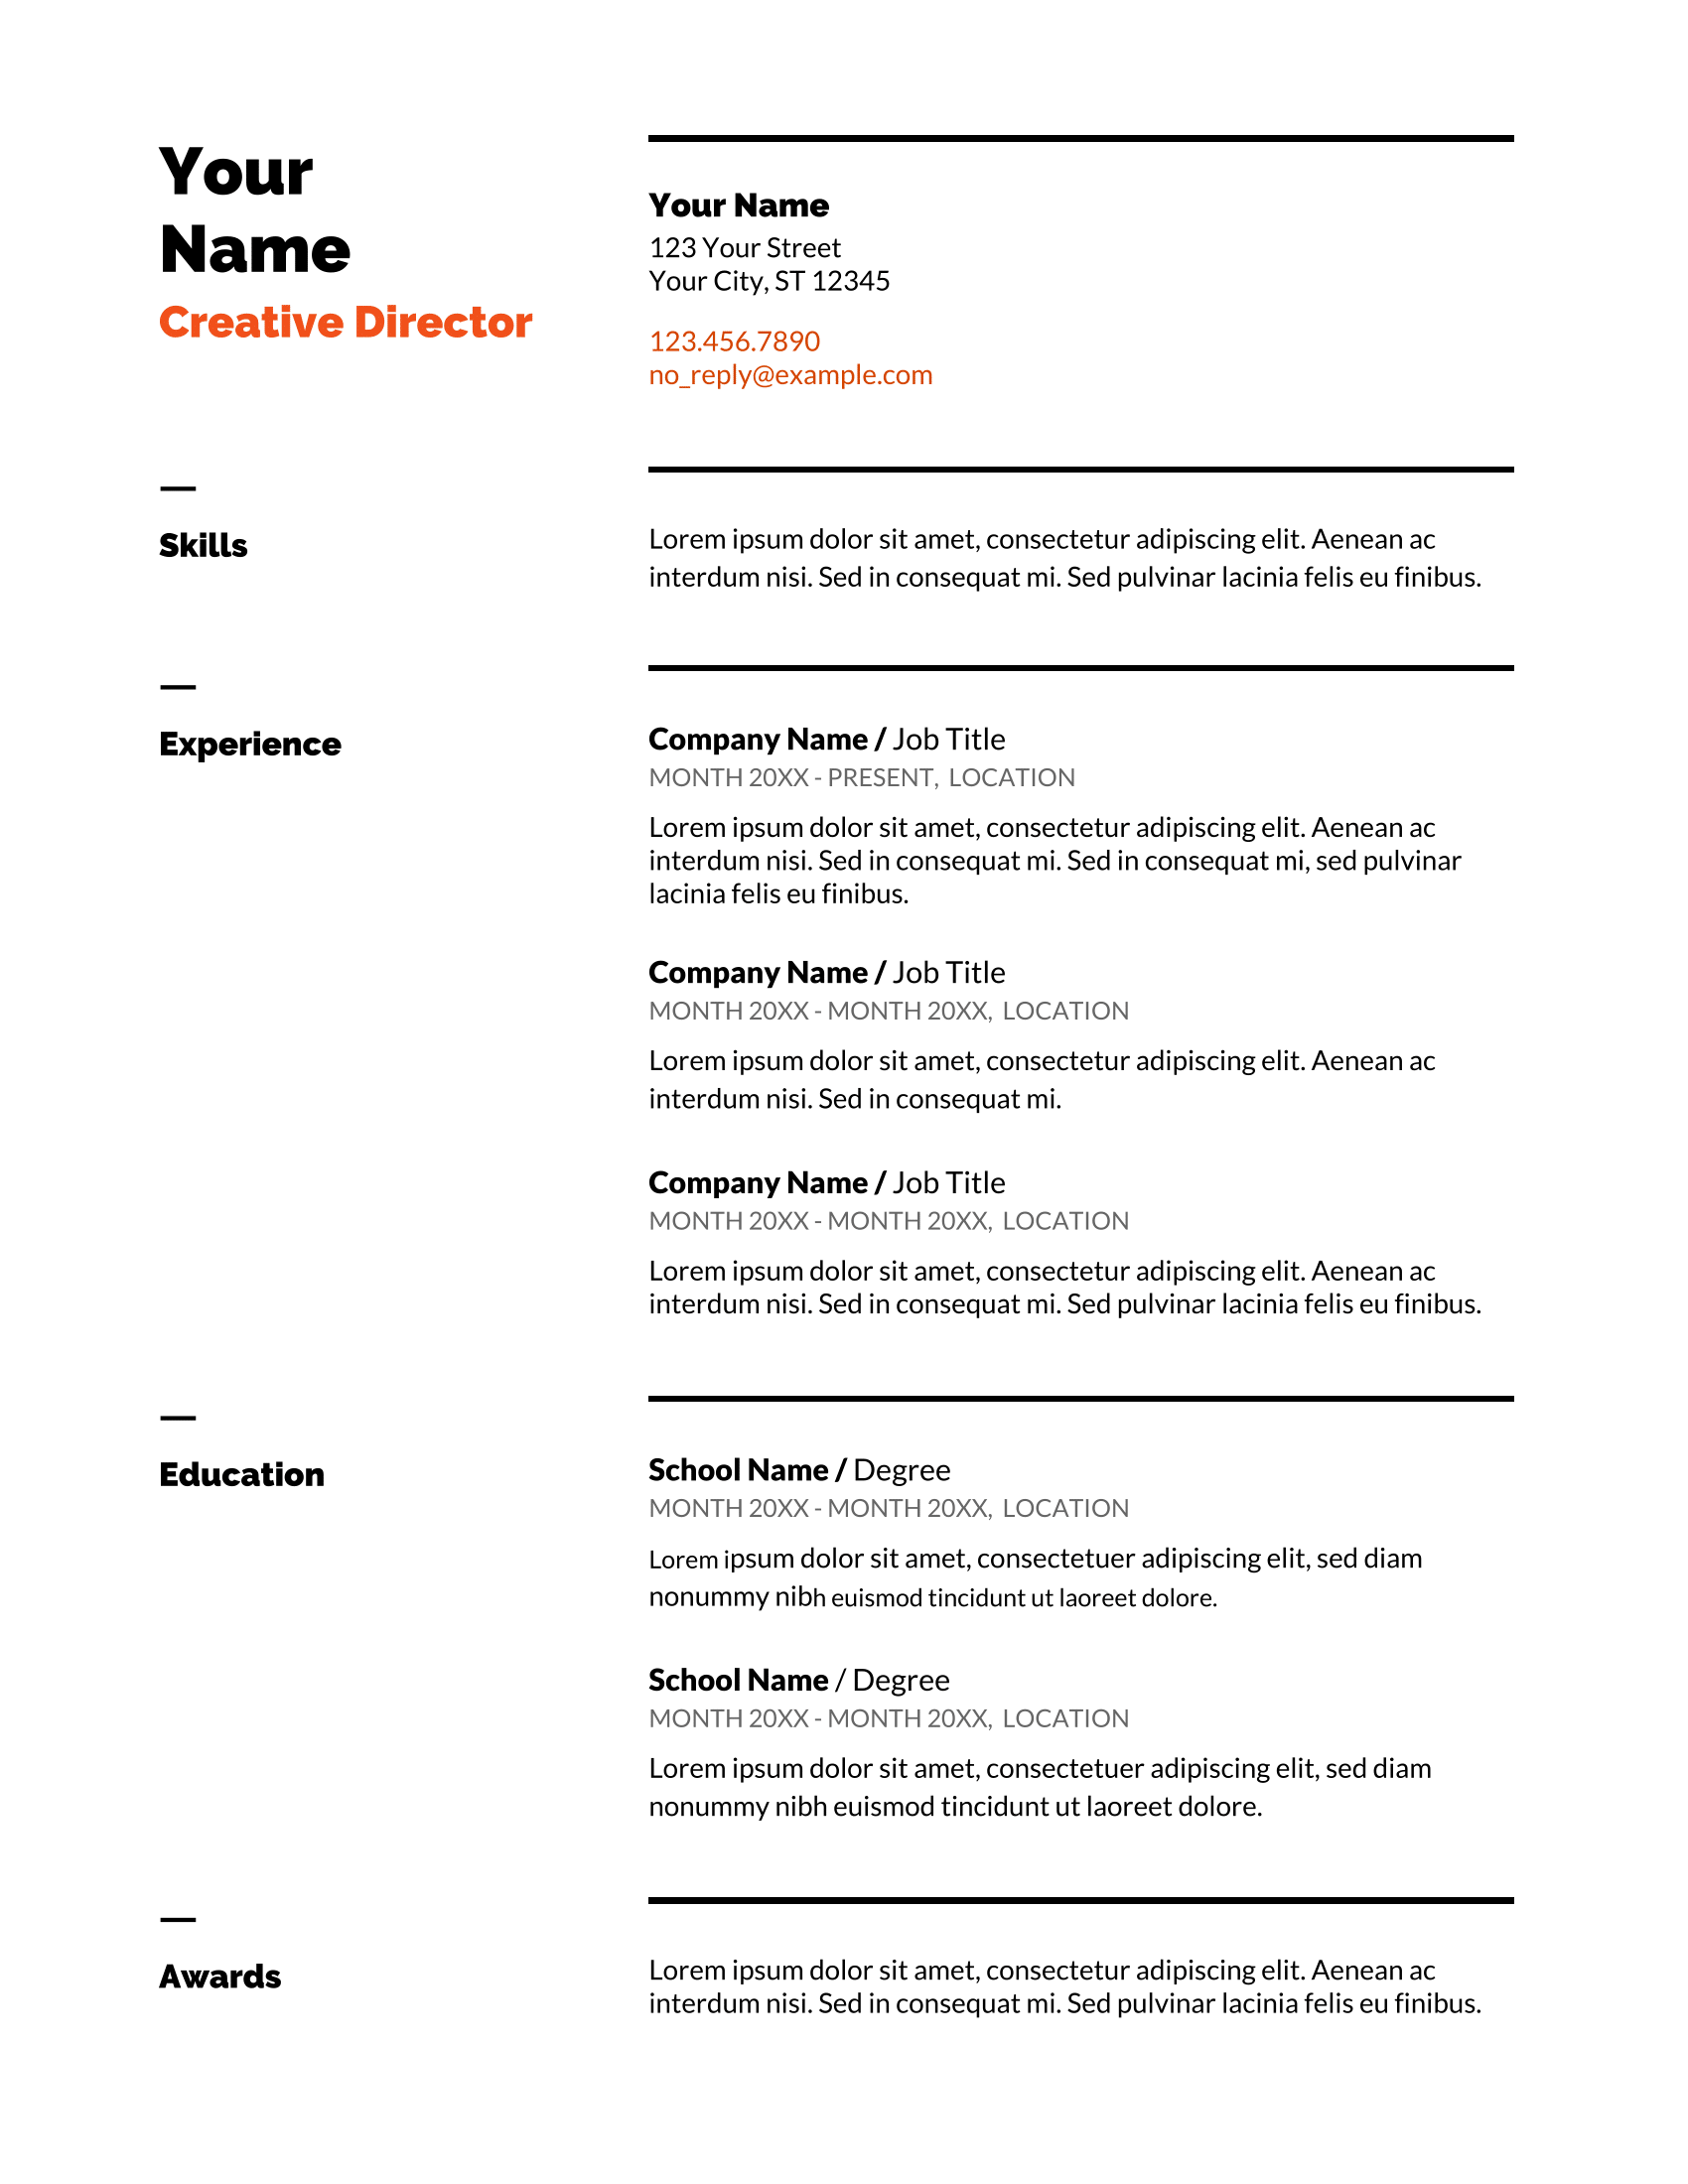 Free Resume Templates For Google Docs 2019 List Of Top 5 Google Docs Resume Templates